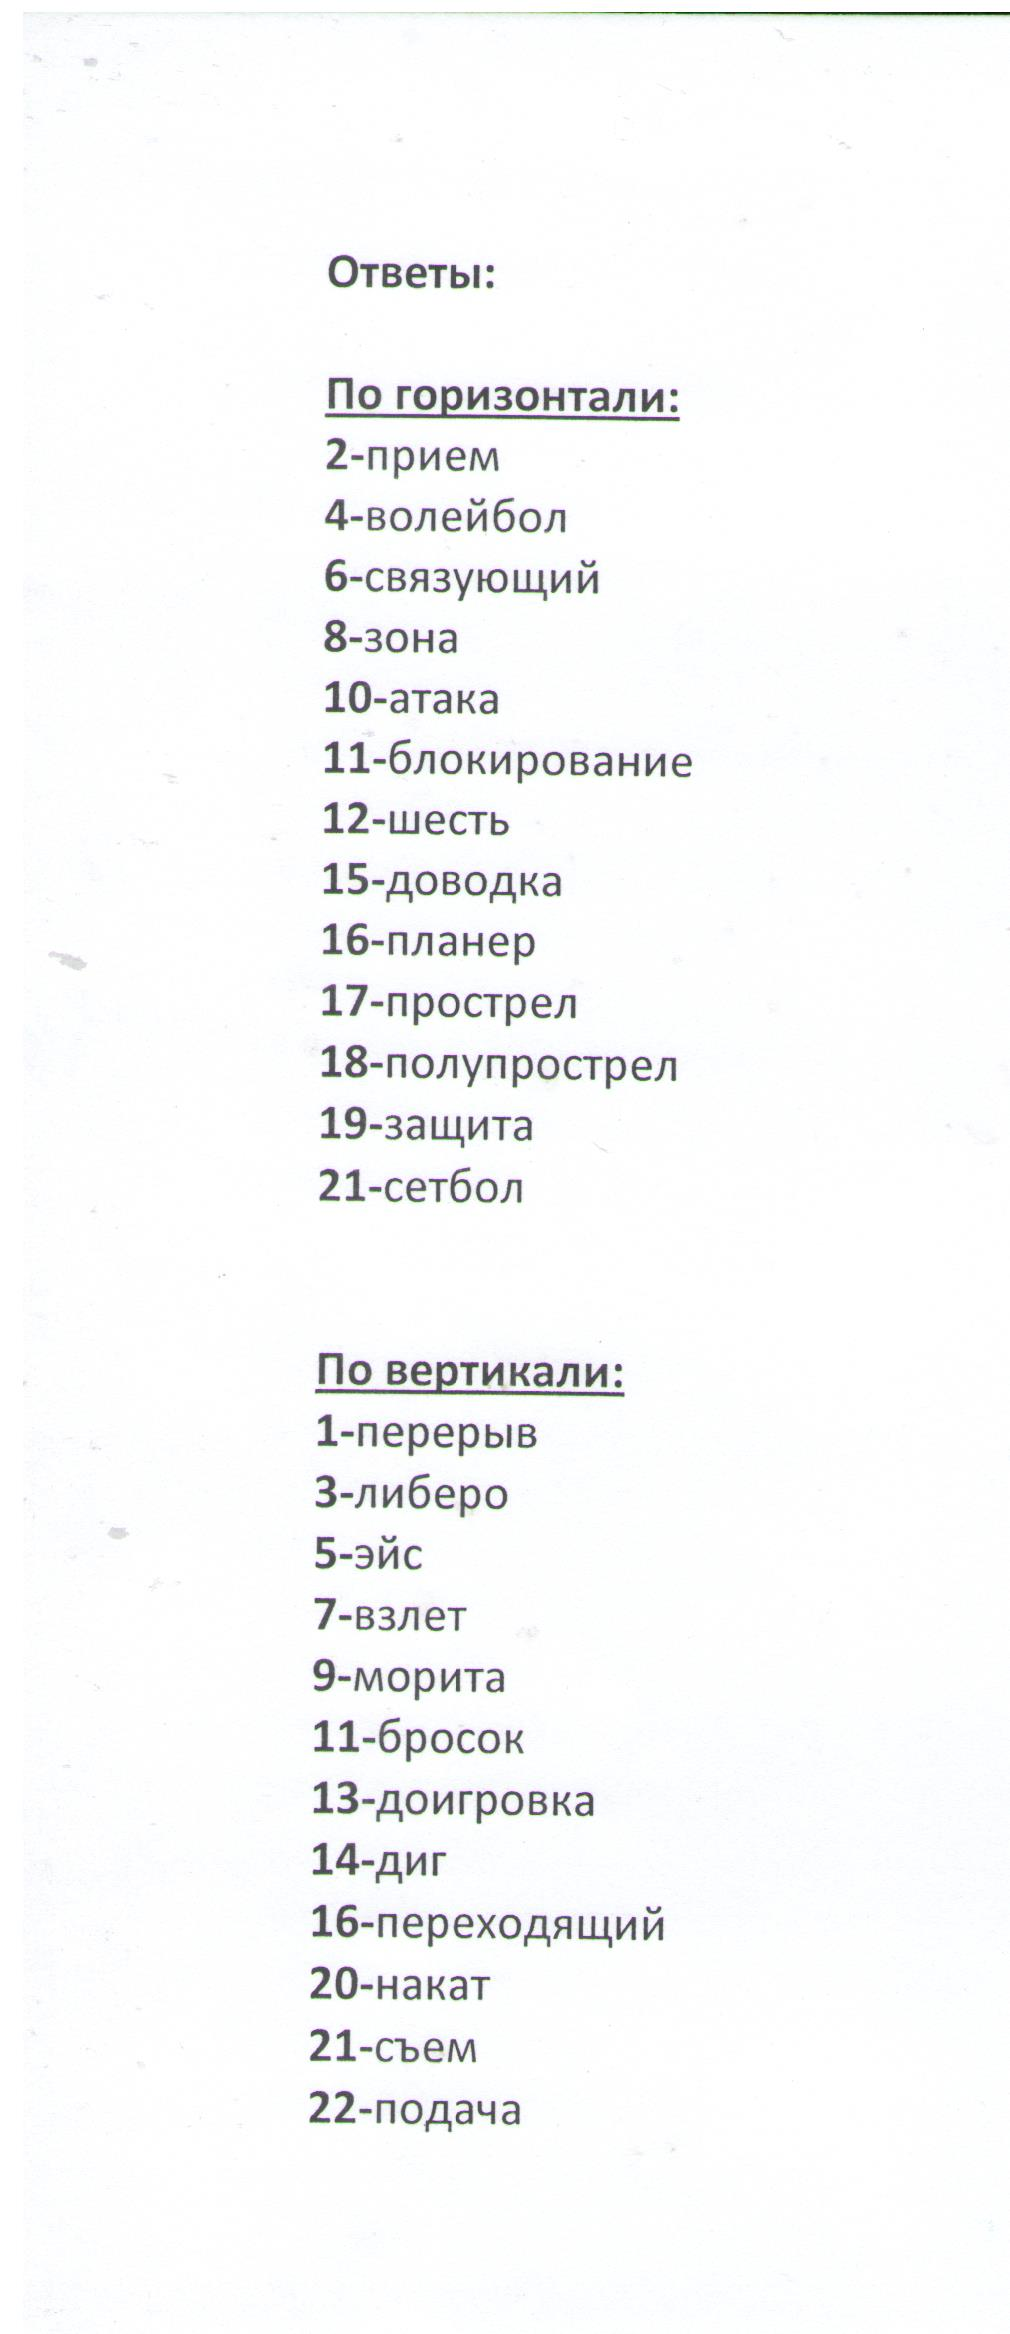 C:\Users\леночка\Documents\Scanned Documents\Кроссворд 5 стр..jpg